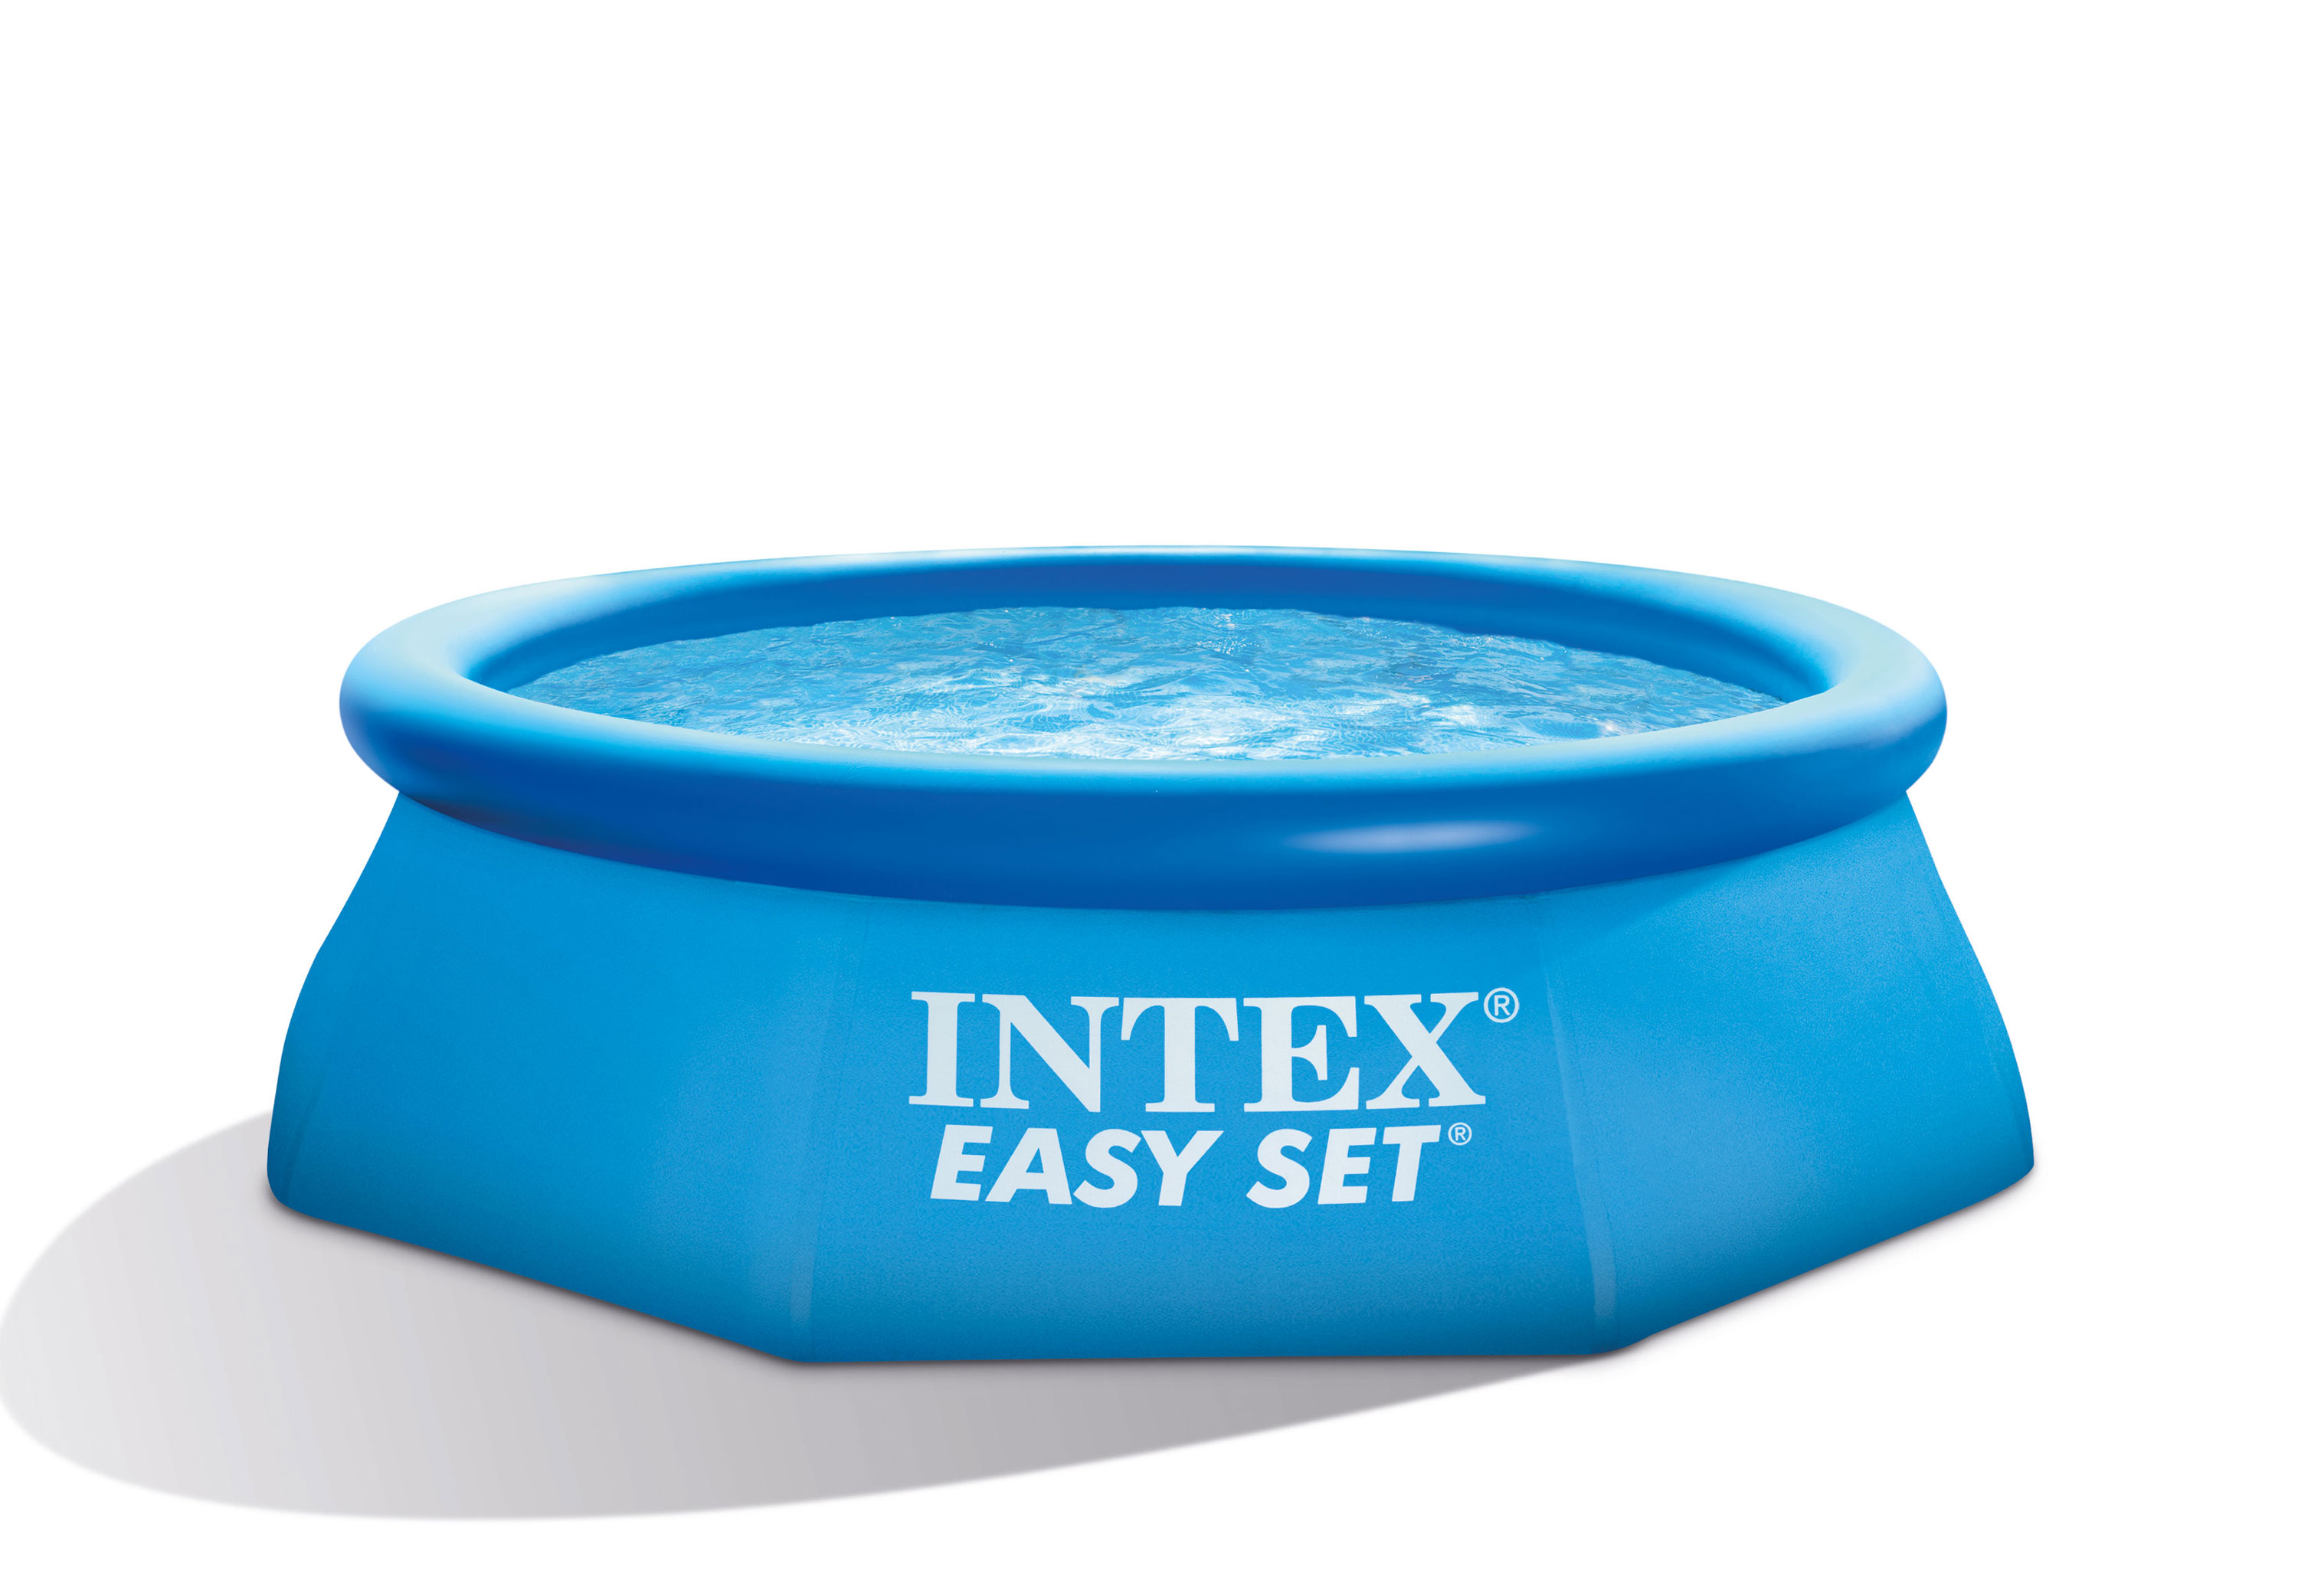 Intex 8 ft. x 30 in. Easy Set Swimming Pool by Intex